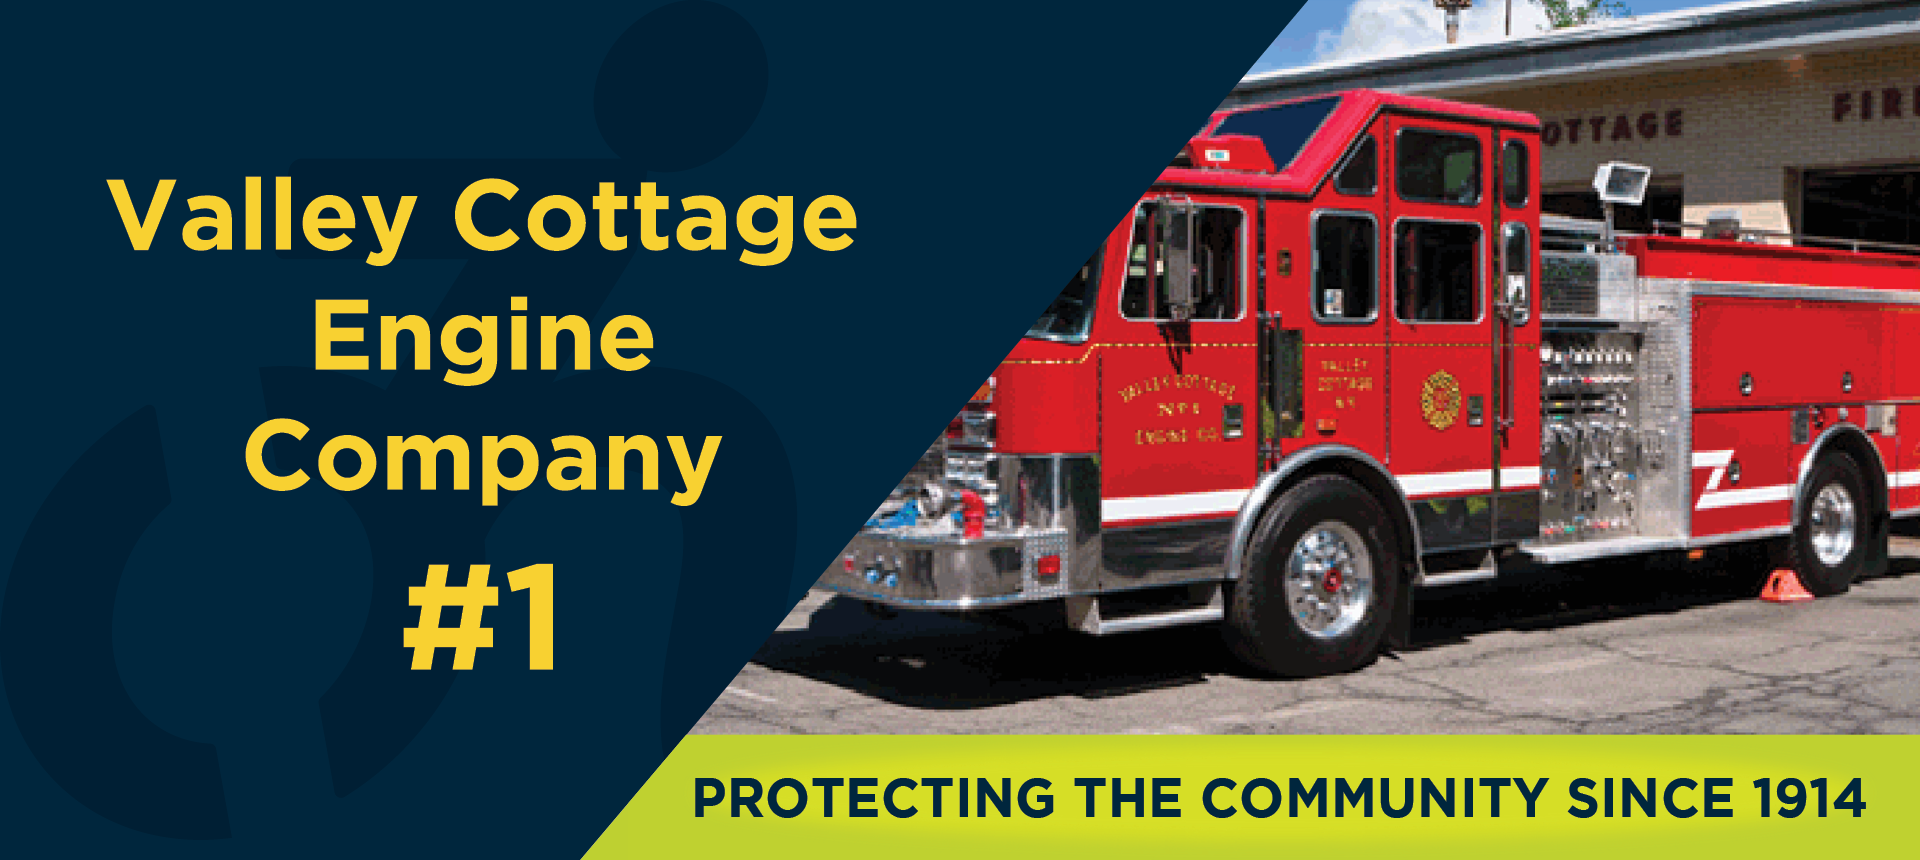 On left side of image, the Valley Cottage Engine Company #1 logo. On right side of the image, a firetruck. Underneath, the image reads: PROTECTING THE COMMUNITY SINCE 1914